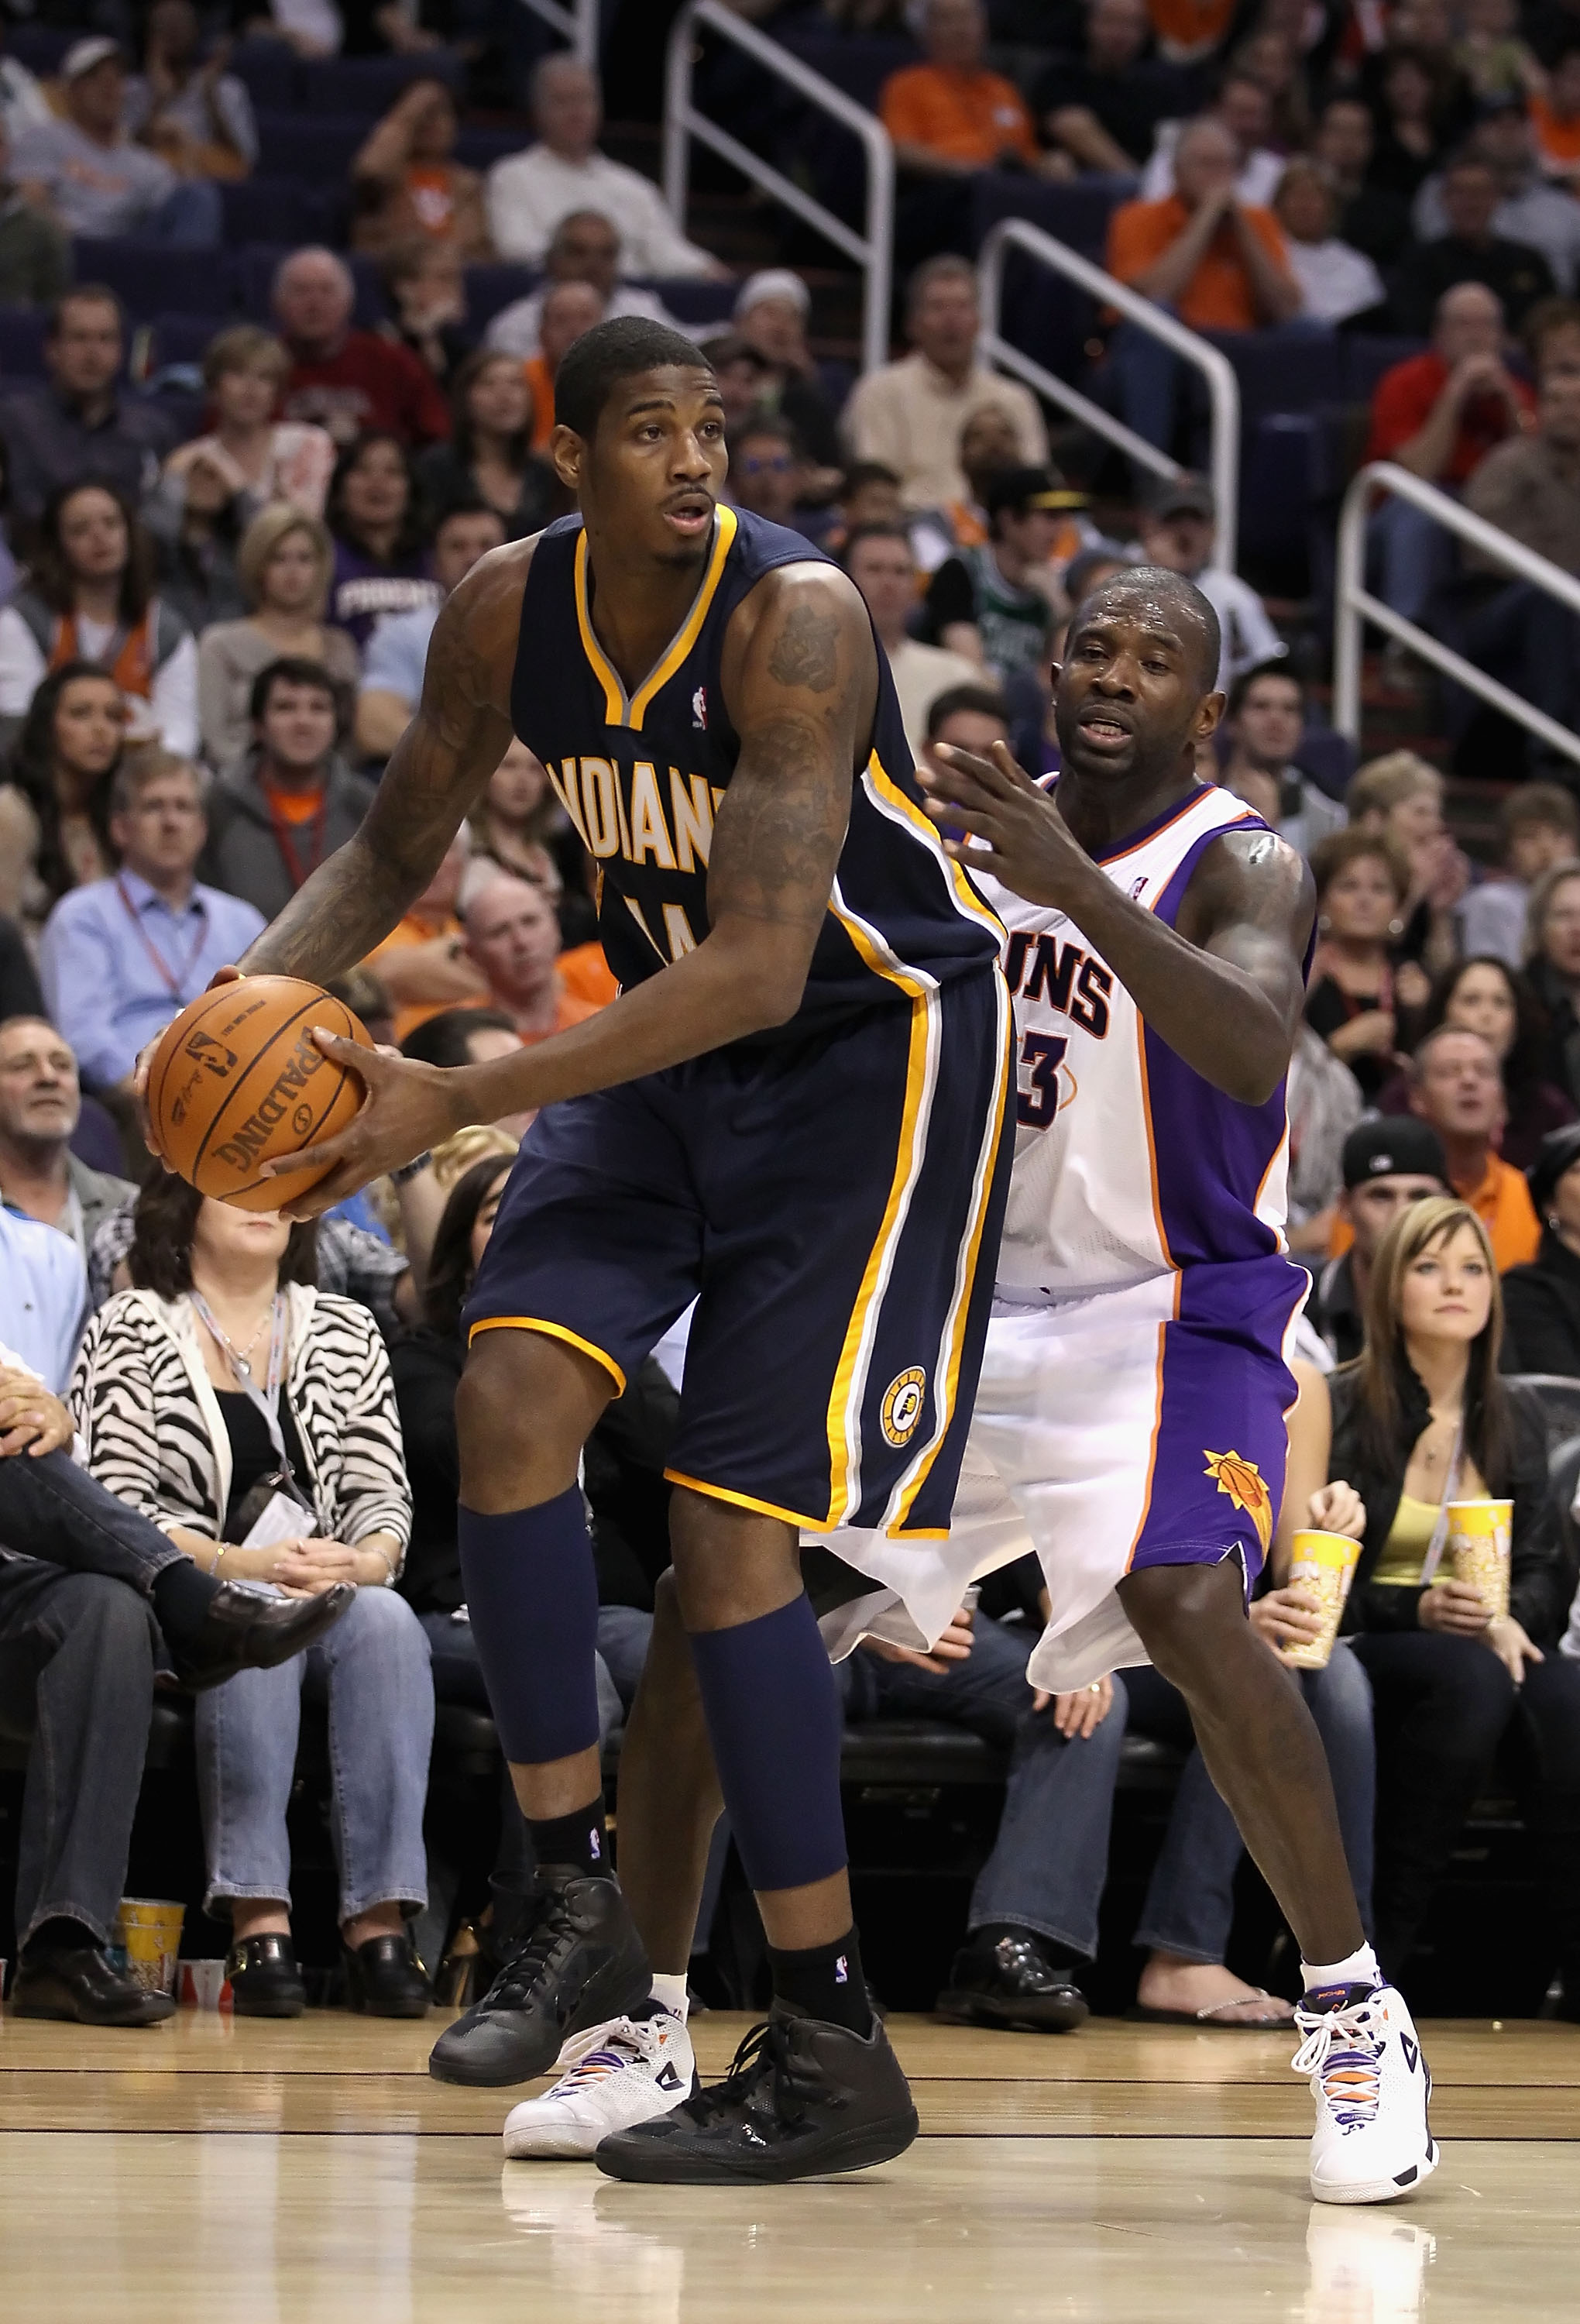 PHOENIX - DECEMBER 03:  Solomon Jones #44 of the Indiana Pacers looks to pass during the NBA game against the Phoenix Suns at US Airways Center on December 3, 2010 in Phoenix, Arizona. NOTE TO USER: User expressly acknowledges and agrees that, by download